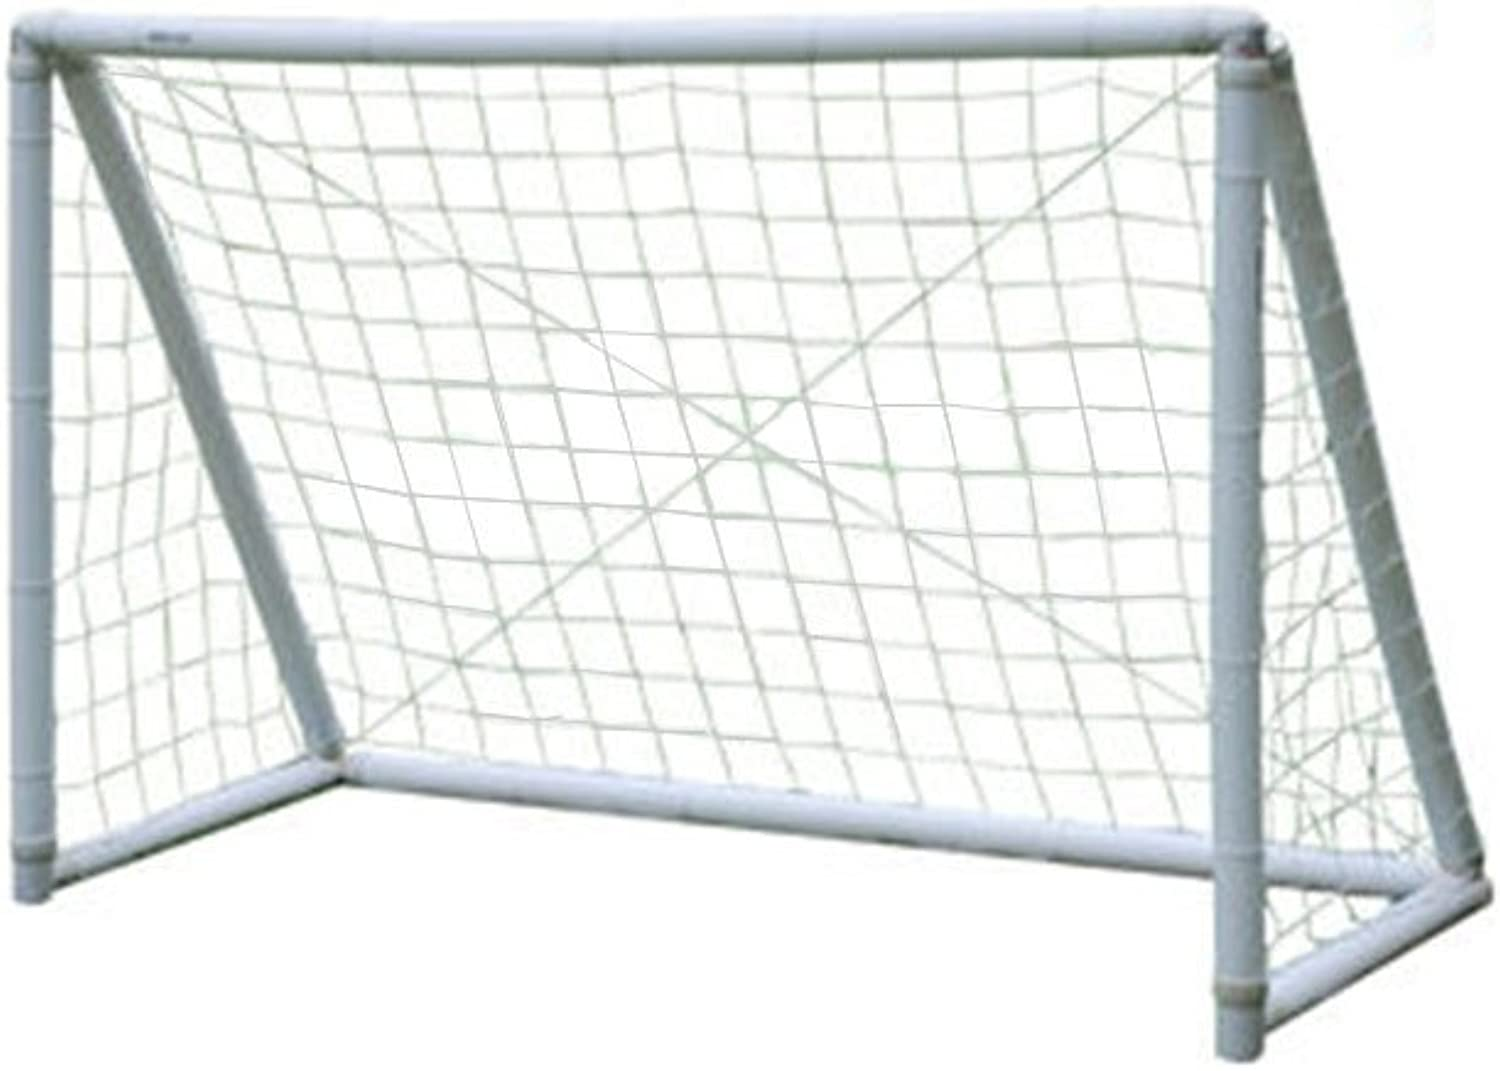 AirGoal Inflatable Soccer Goal for Kids Safe and Portable Indoor Outdoor Use, with Sports Bag Pump Ground Anchors Sand Bags, 3.9 X 2.6 ft  6X4 ft  6.5X3.2 ft